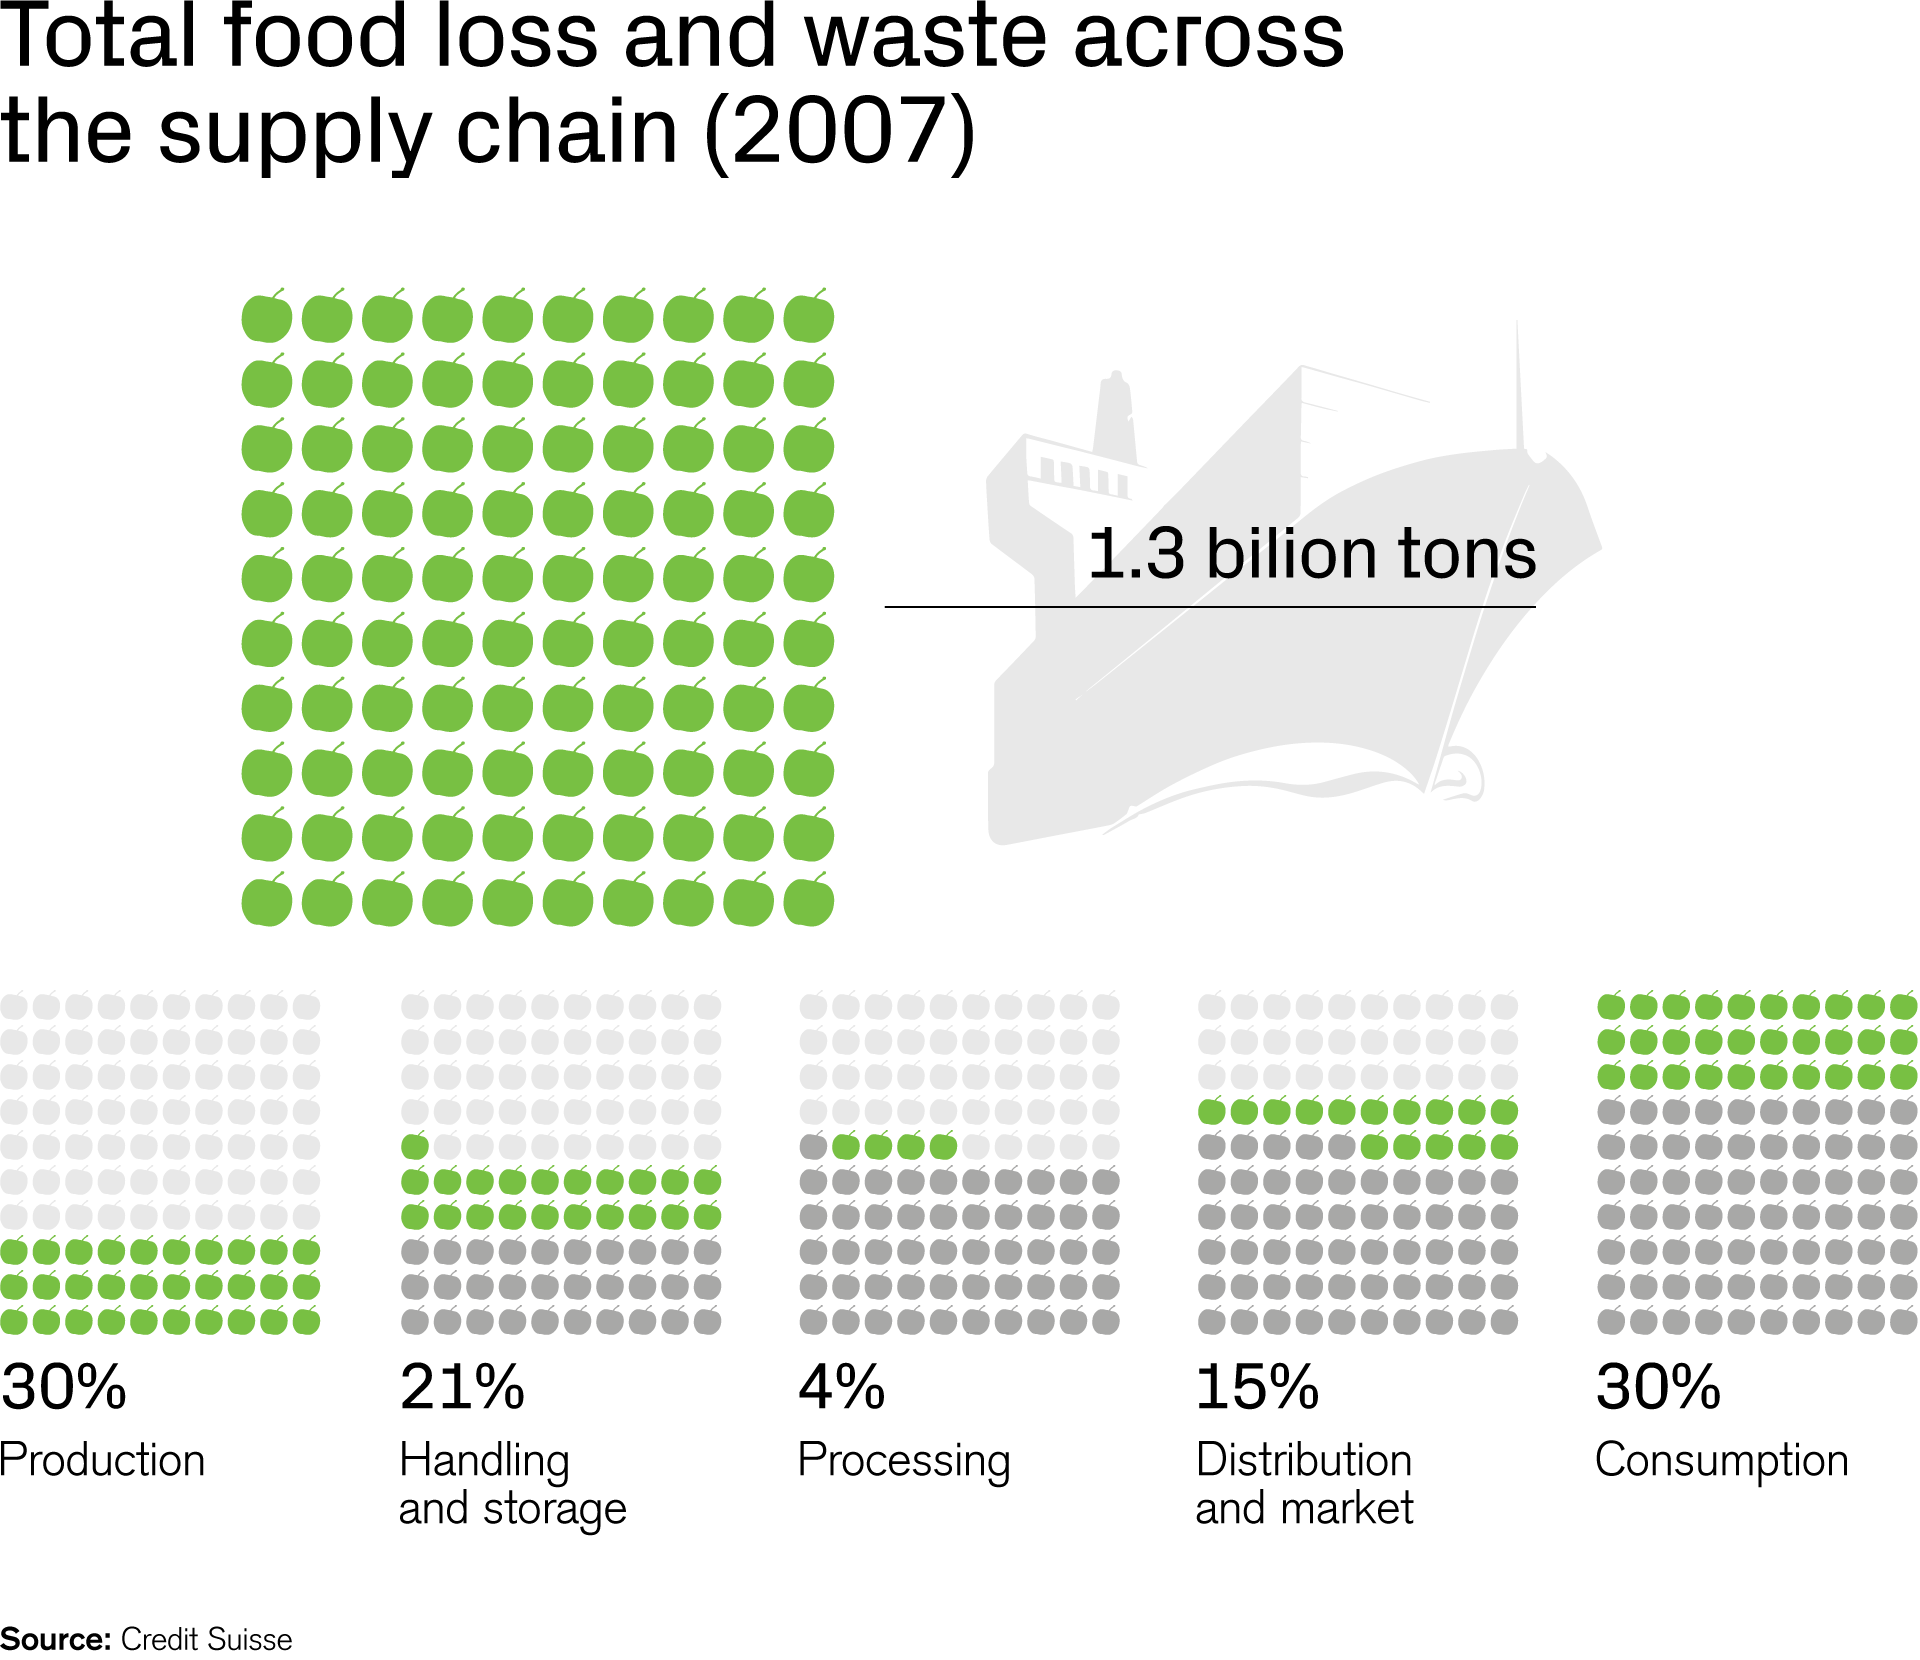 Total food loss and waste across the supply chain